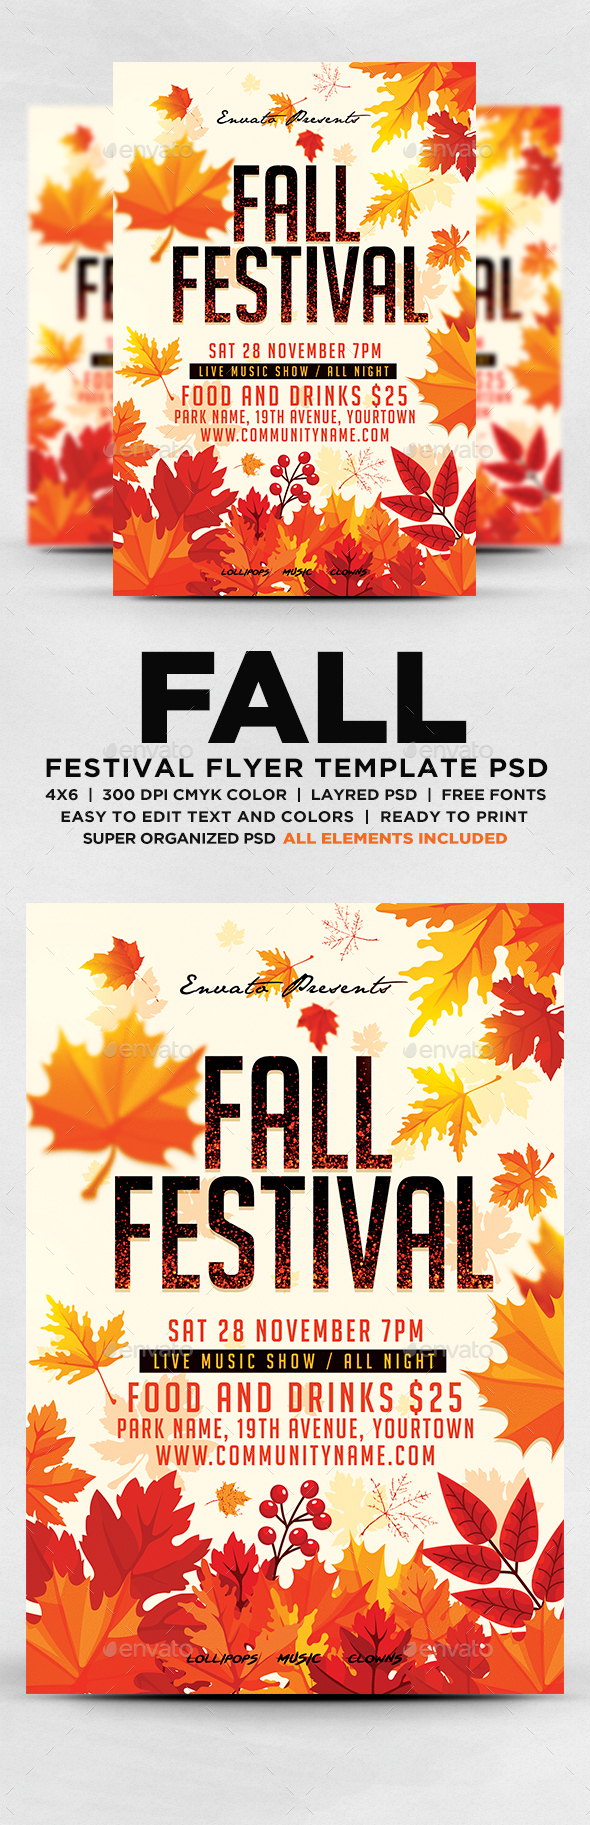 fall festival flyer by designblend graphicriver. Black Bedroom Furniture Sets. Home Design Ideas